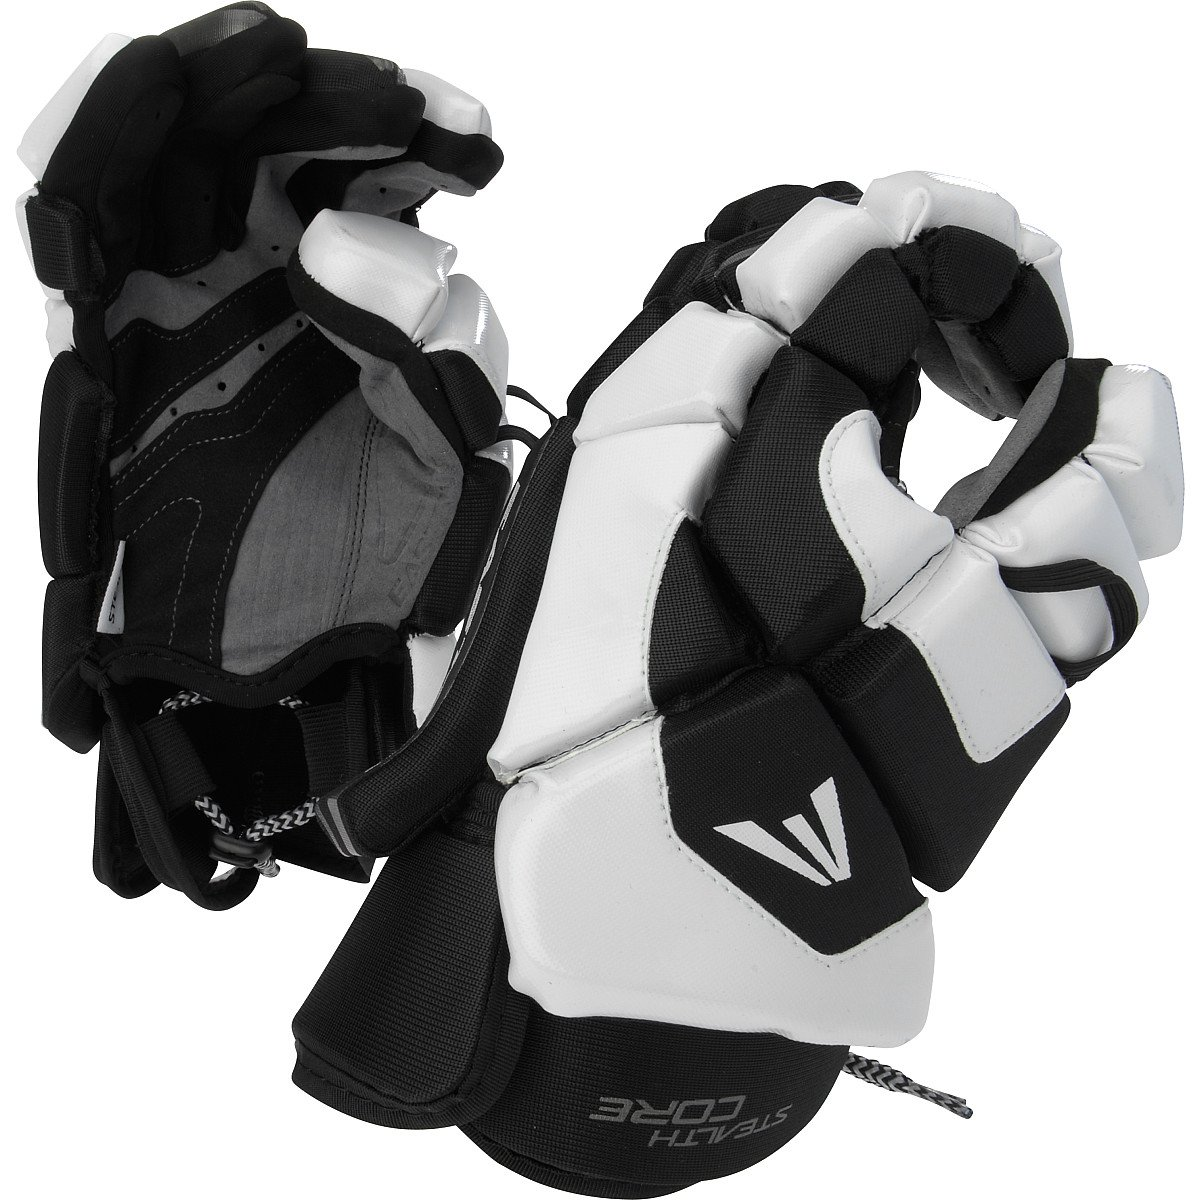 Easton Stealth Core 13-Inch Lacrosse Gloves